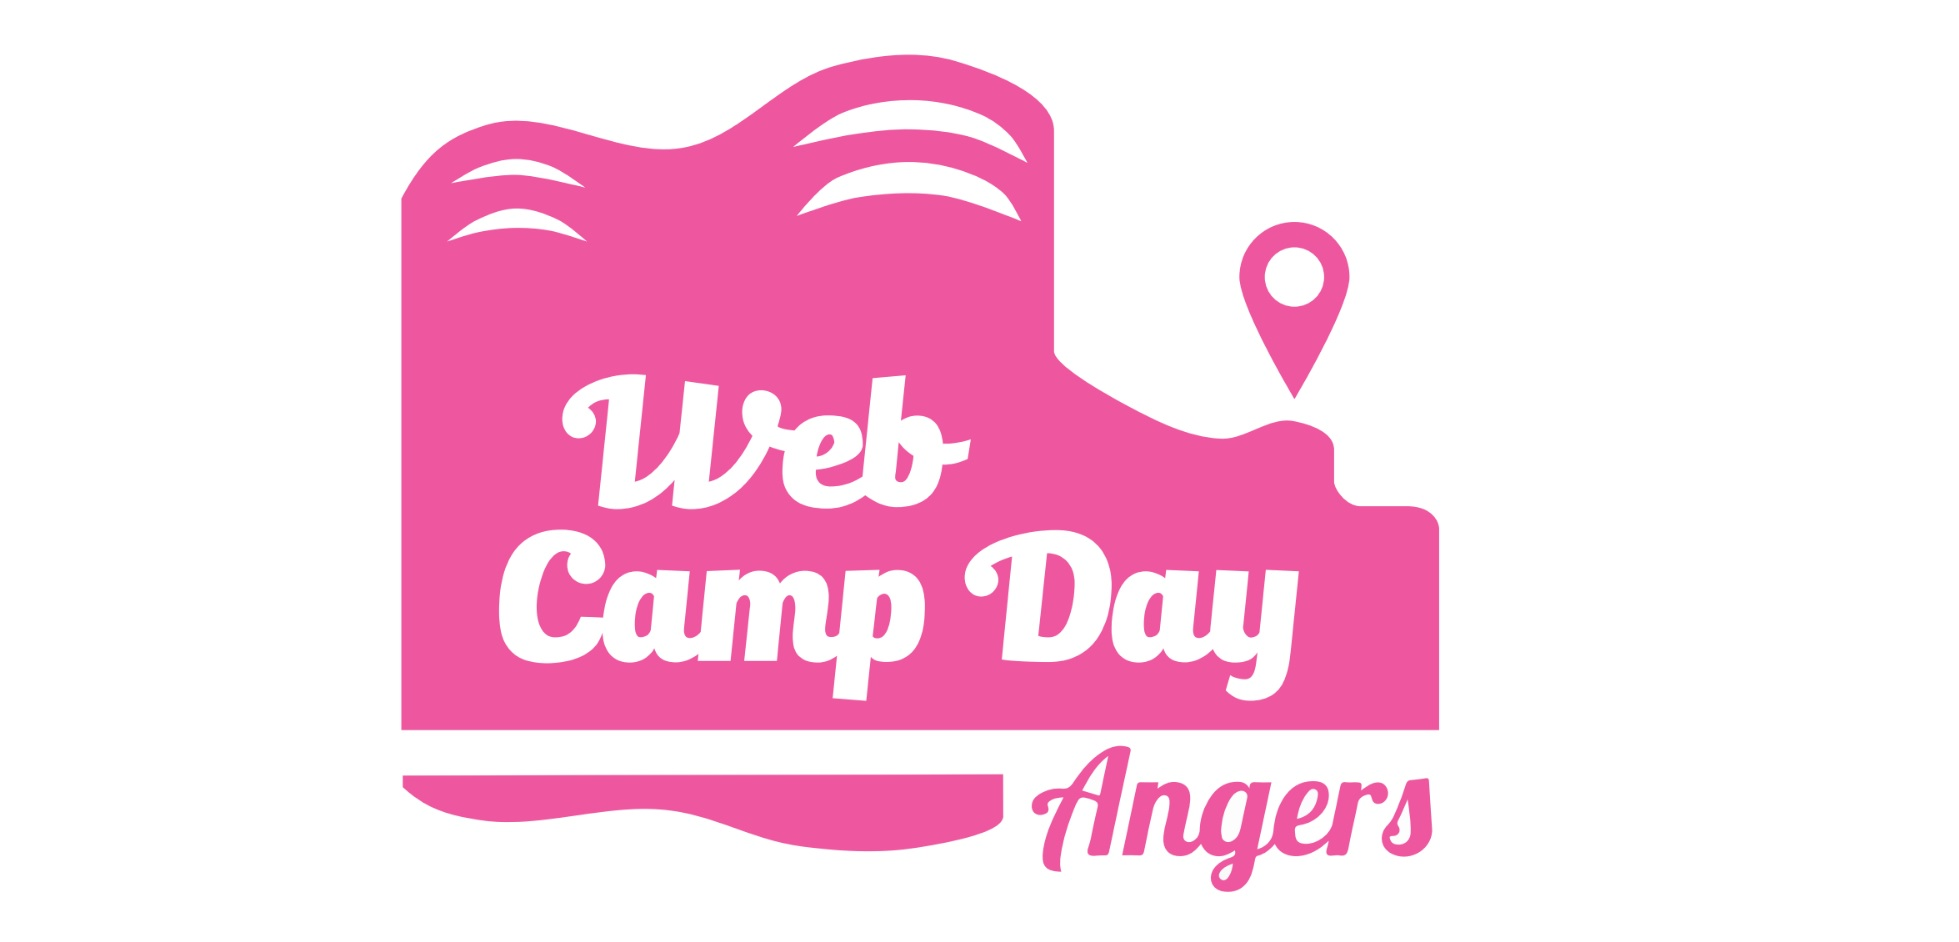 webcampday-angers